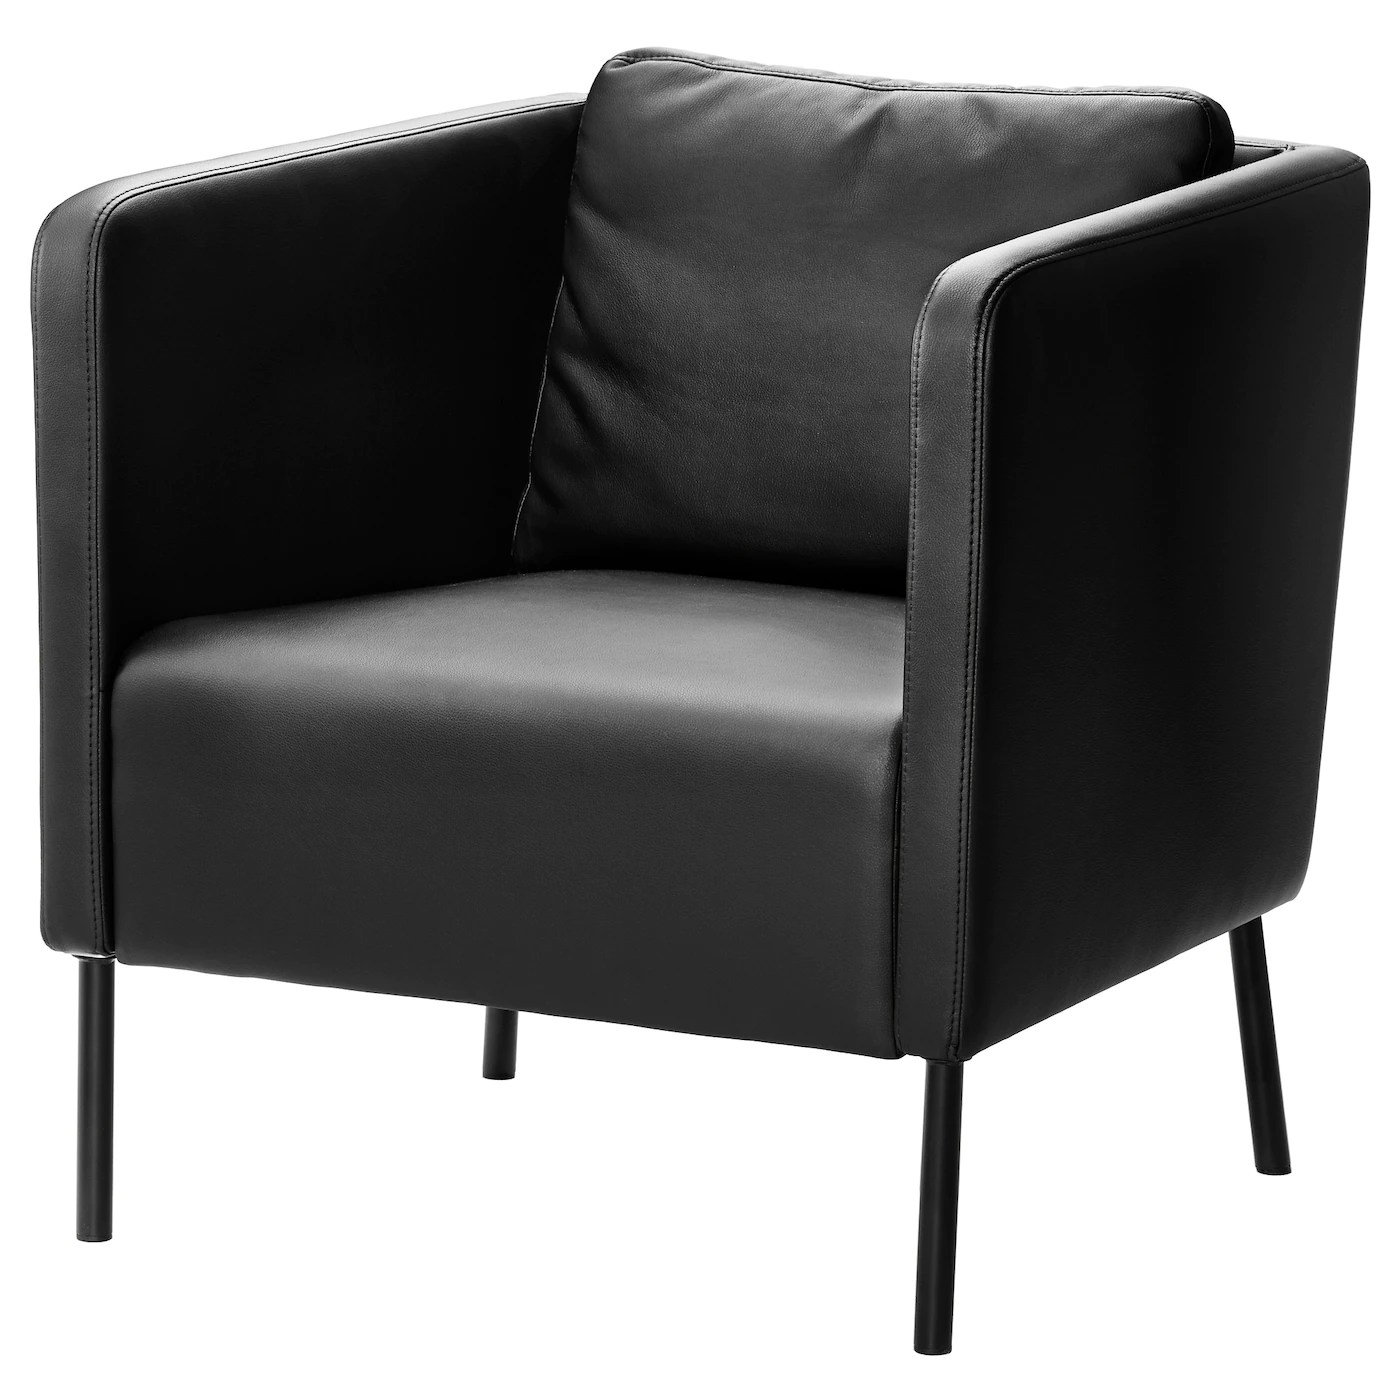 clean leather sofa with damp cloth can you use saddle soap on sofas armchairs   shop at ikea ireland